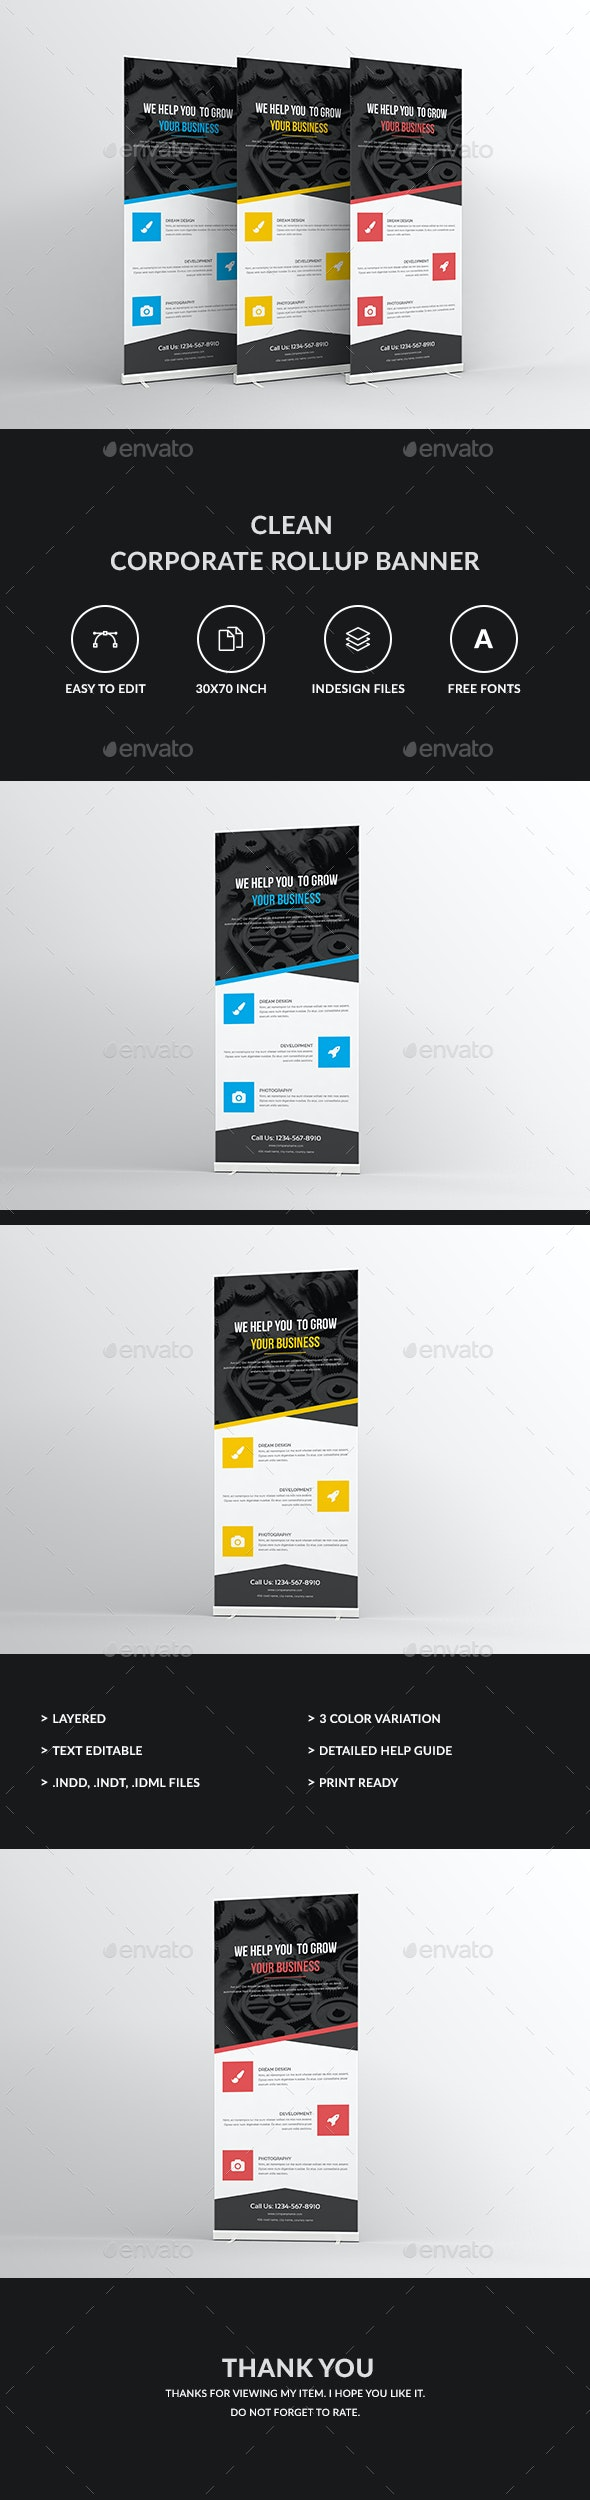 Clean Corporate Rollup Banner - Signage Print Templates